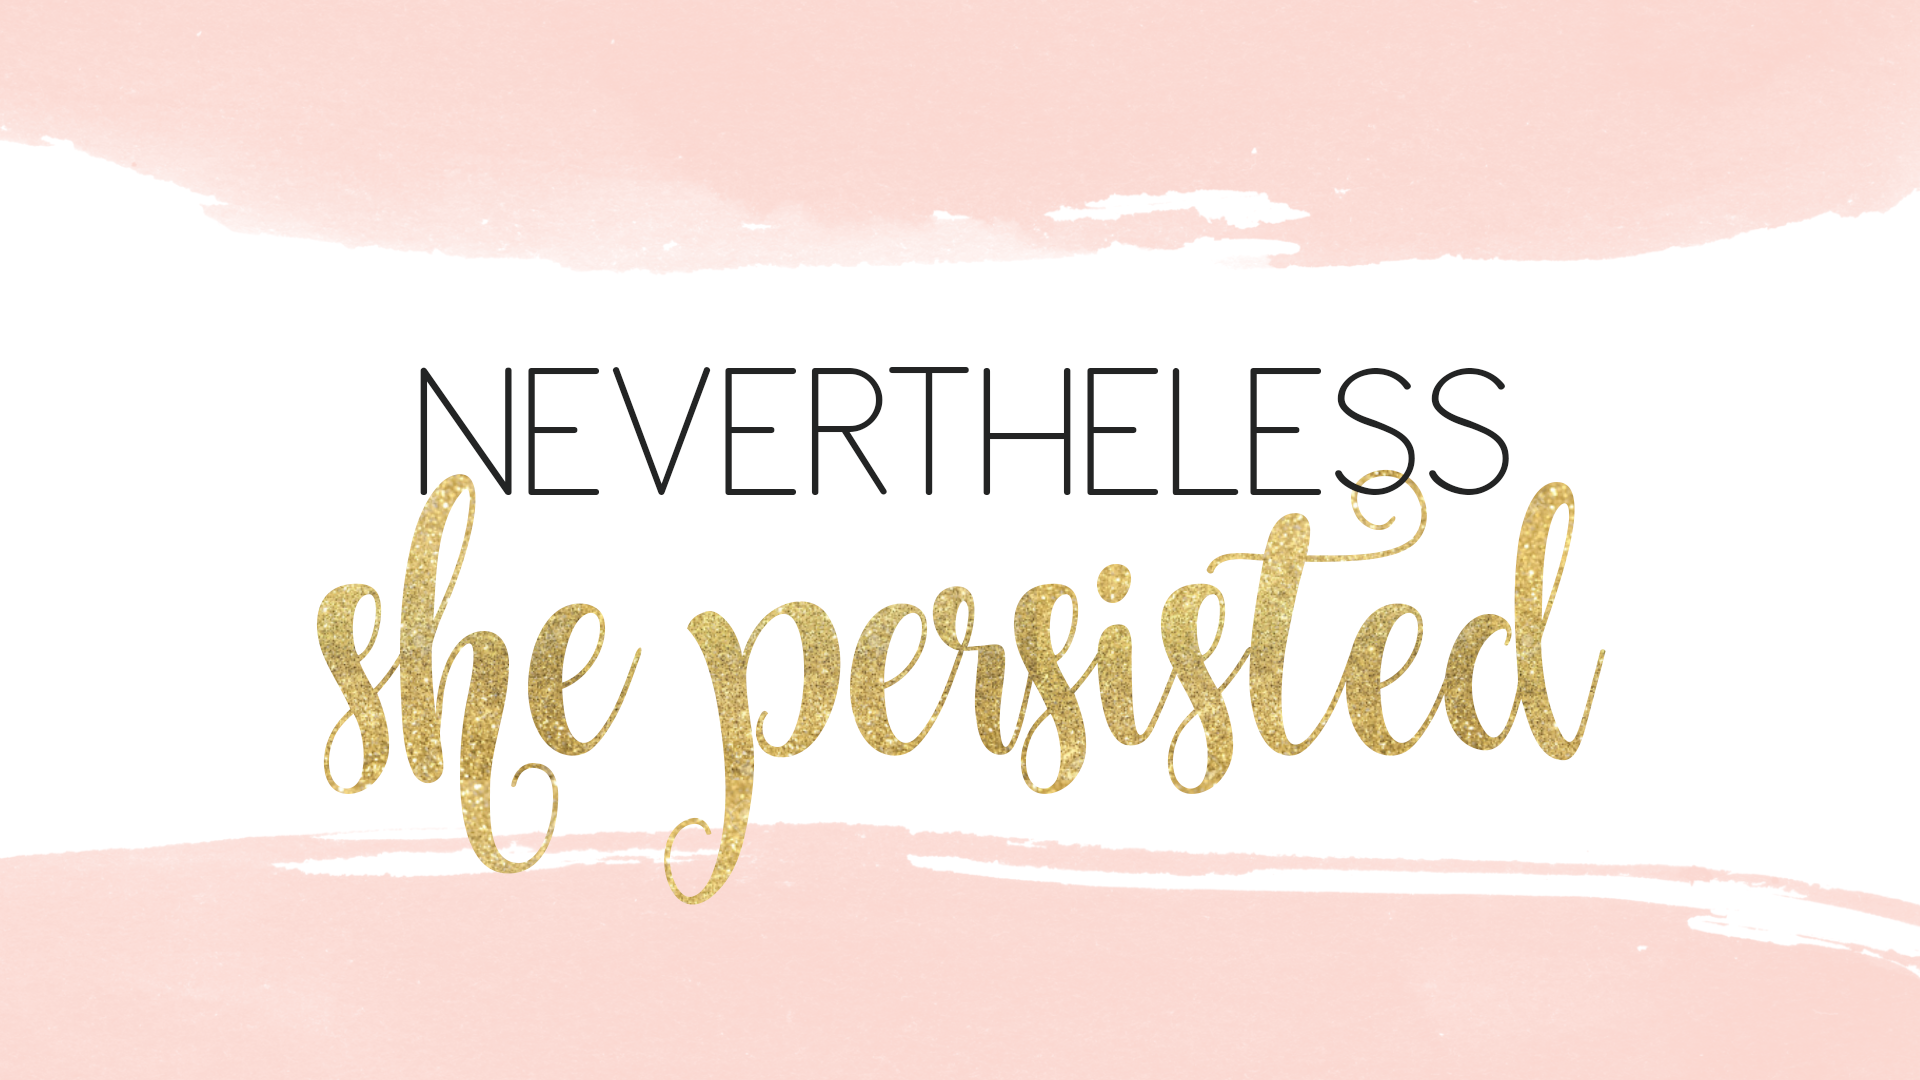 Nevertheless She Persisted motivational quote for